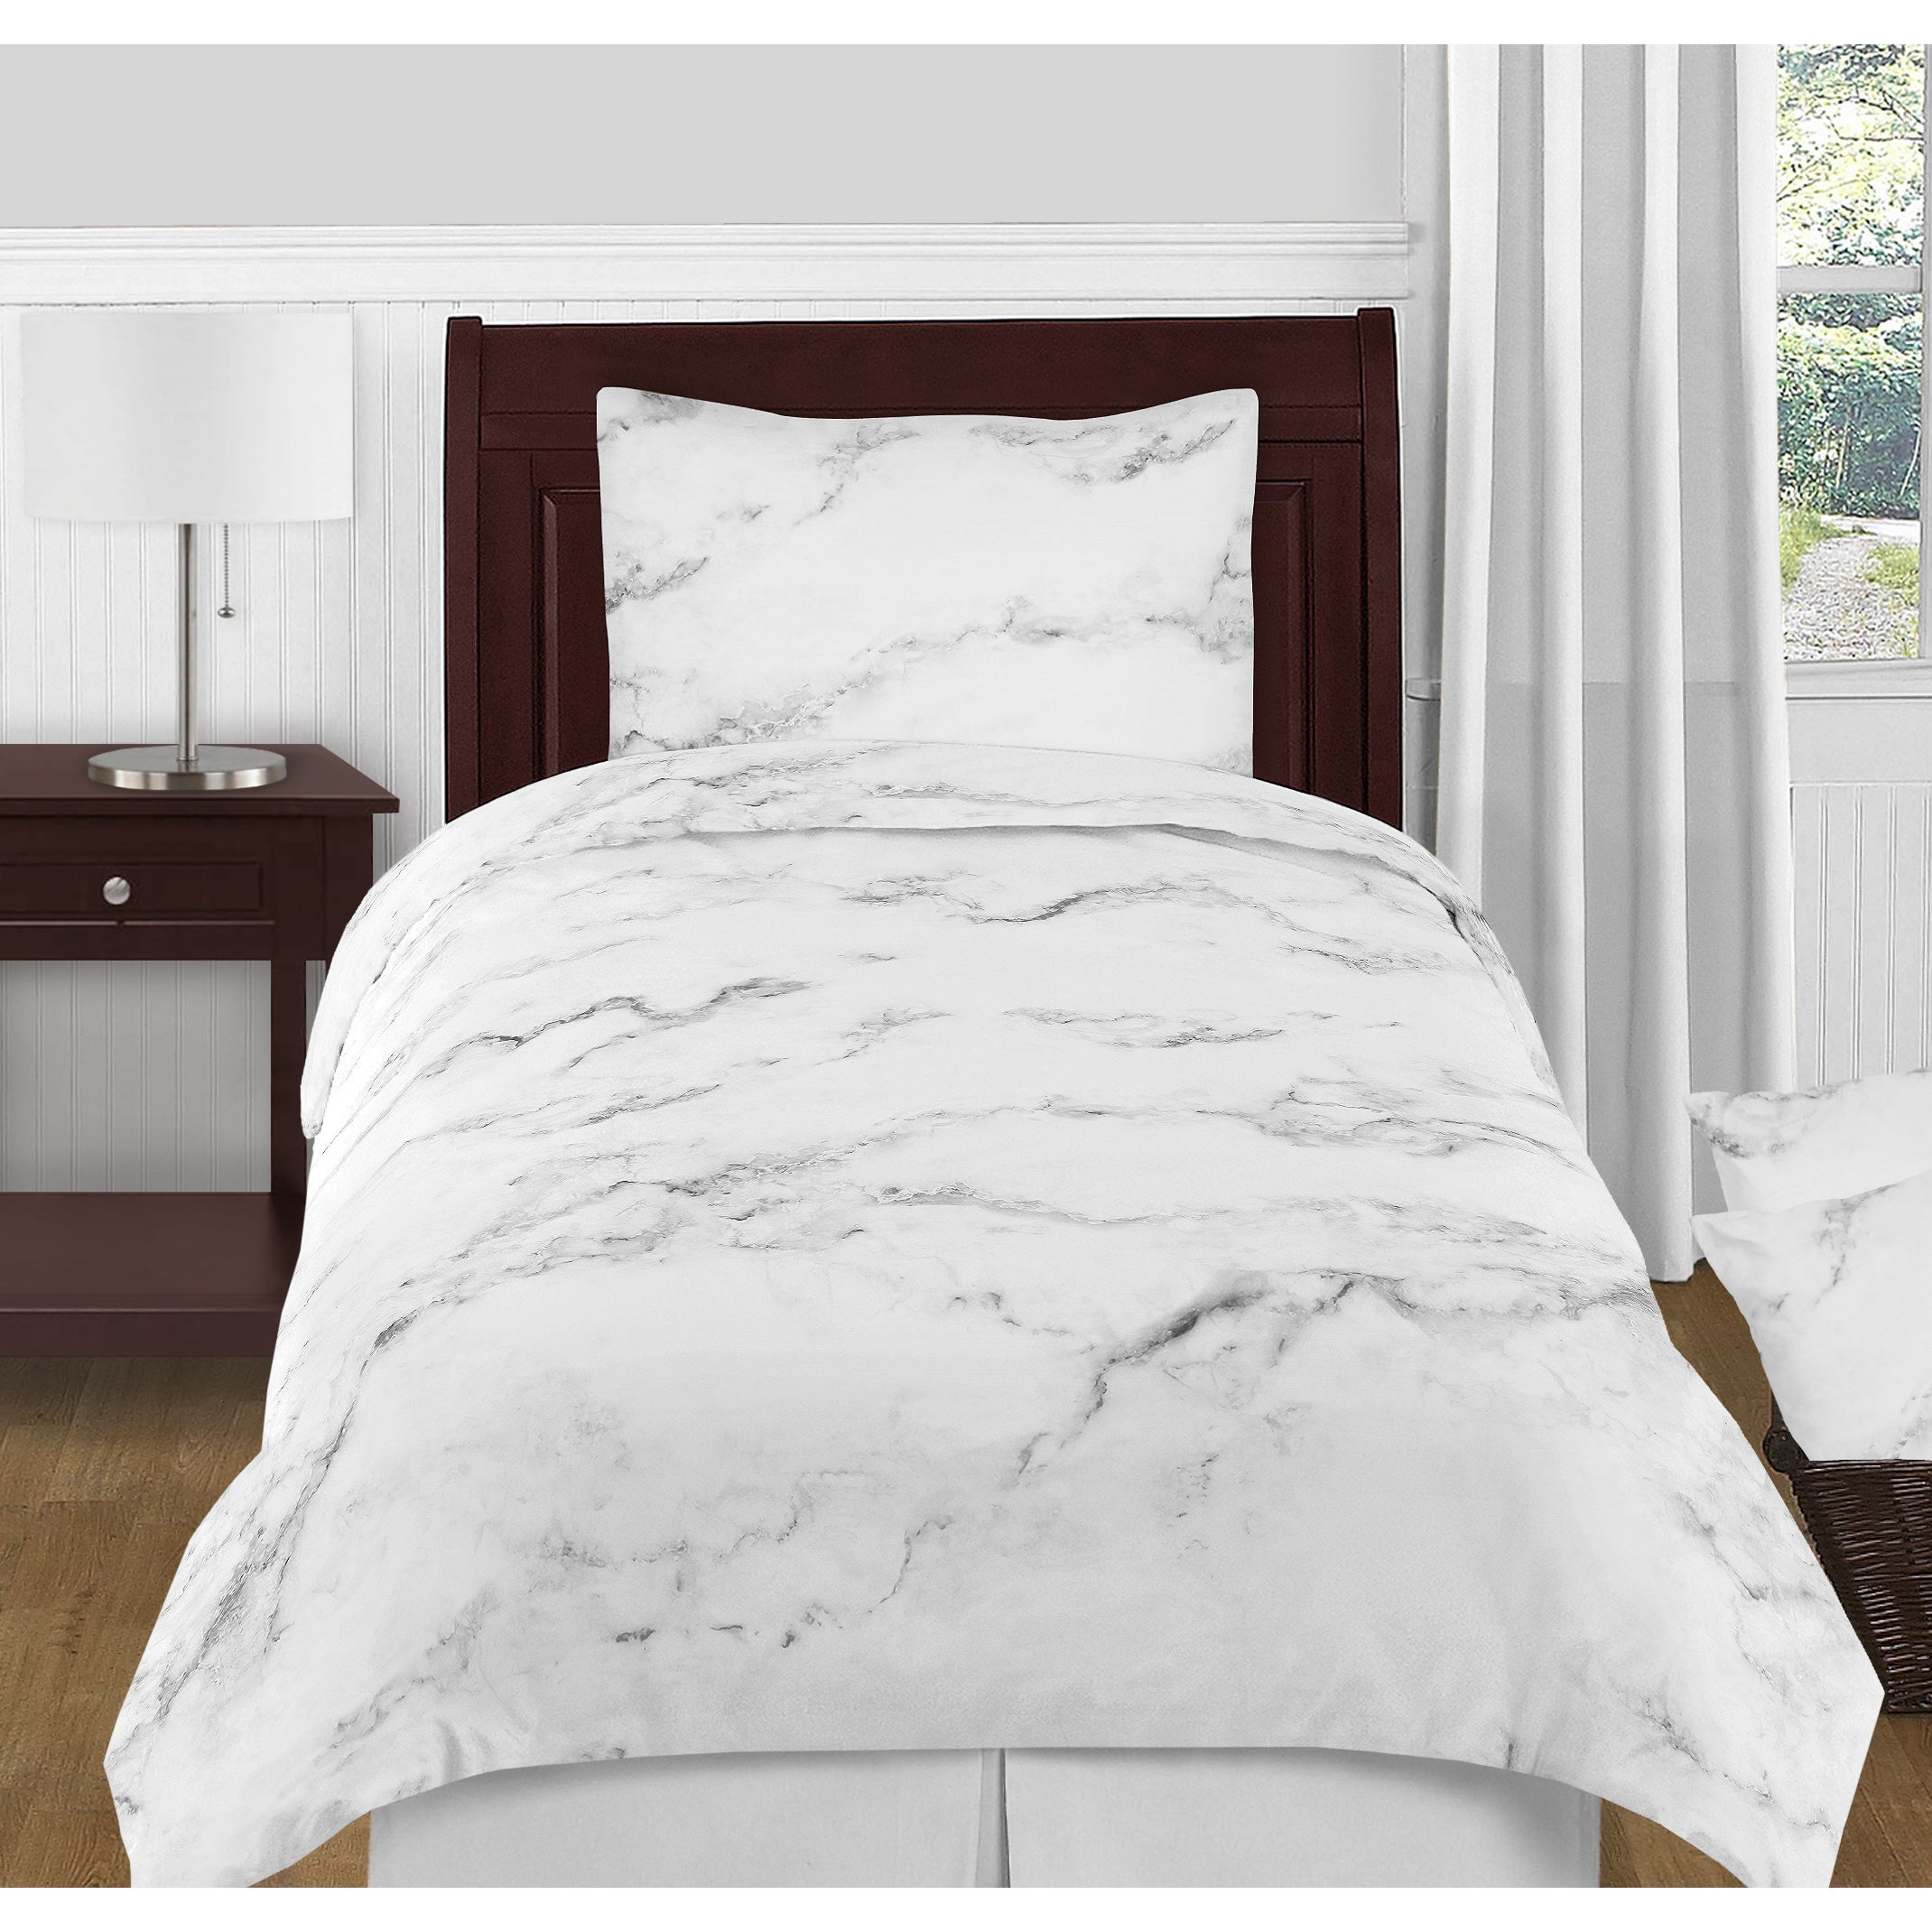 brands sheets miller hotel bedding aetherair co marshalls queen picture bedroom sets collection asli comforter excellent nicole marvelous